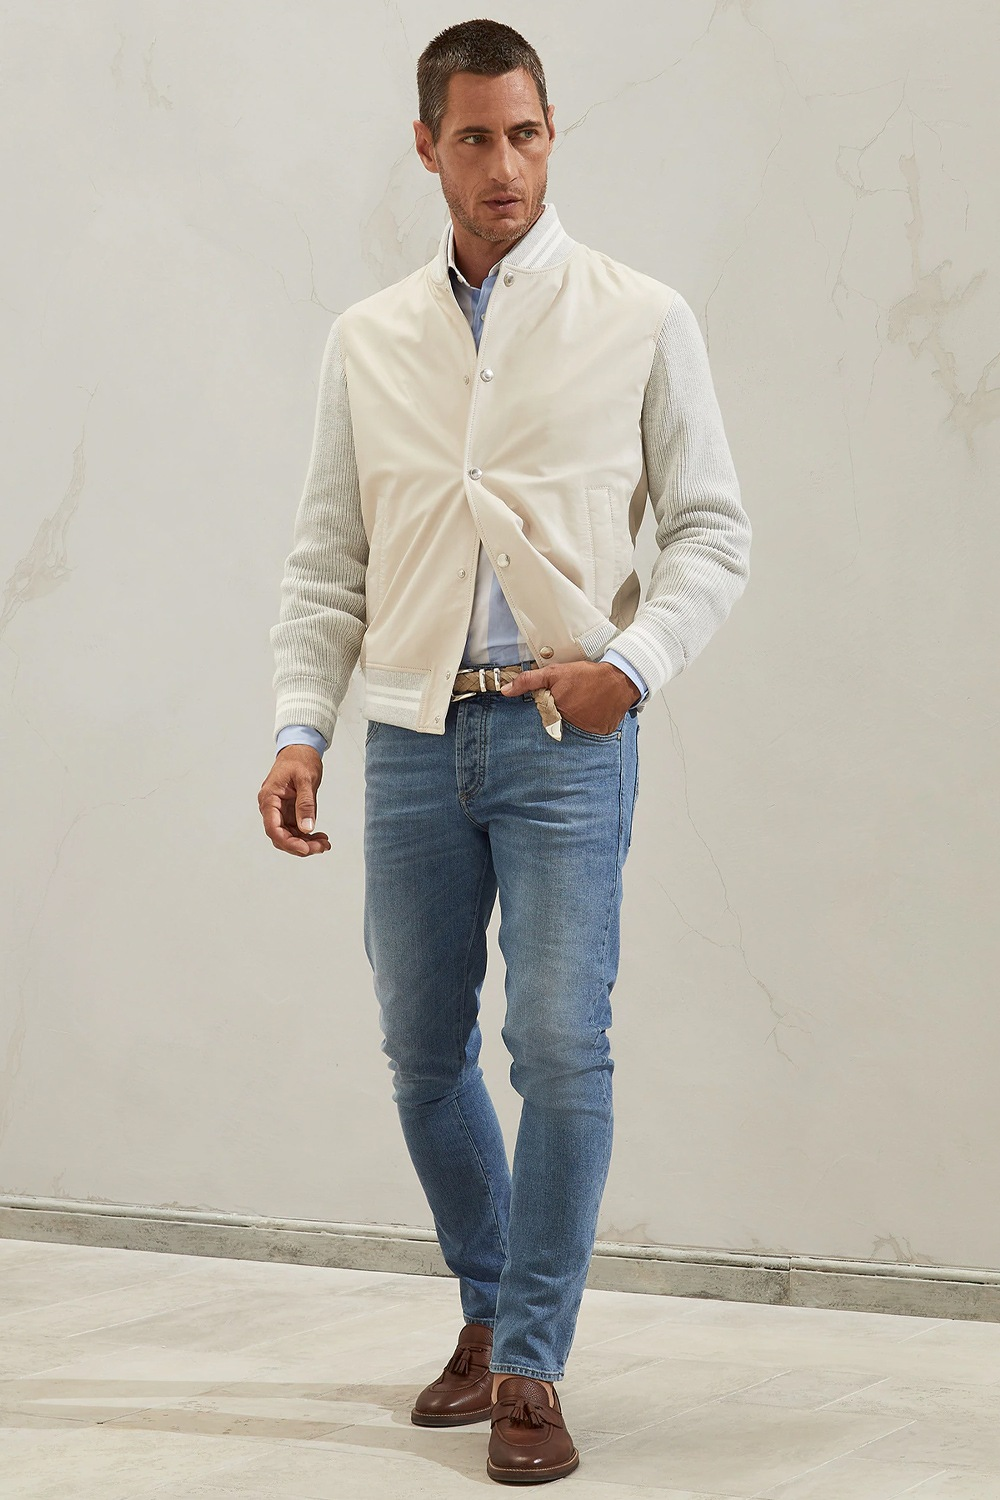 What Should Be On Your Style Radar for Spring? Mid wash denim, Brunellow Cucinelli men's mid wash denim